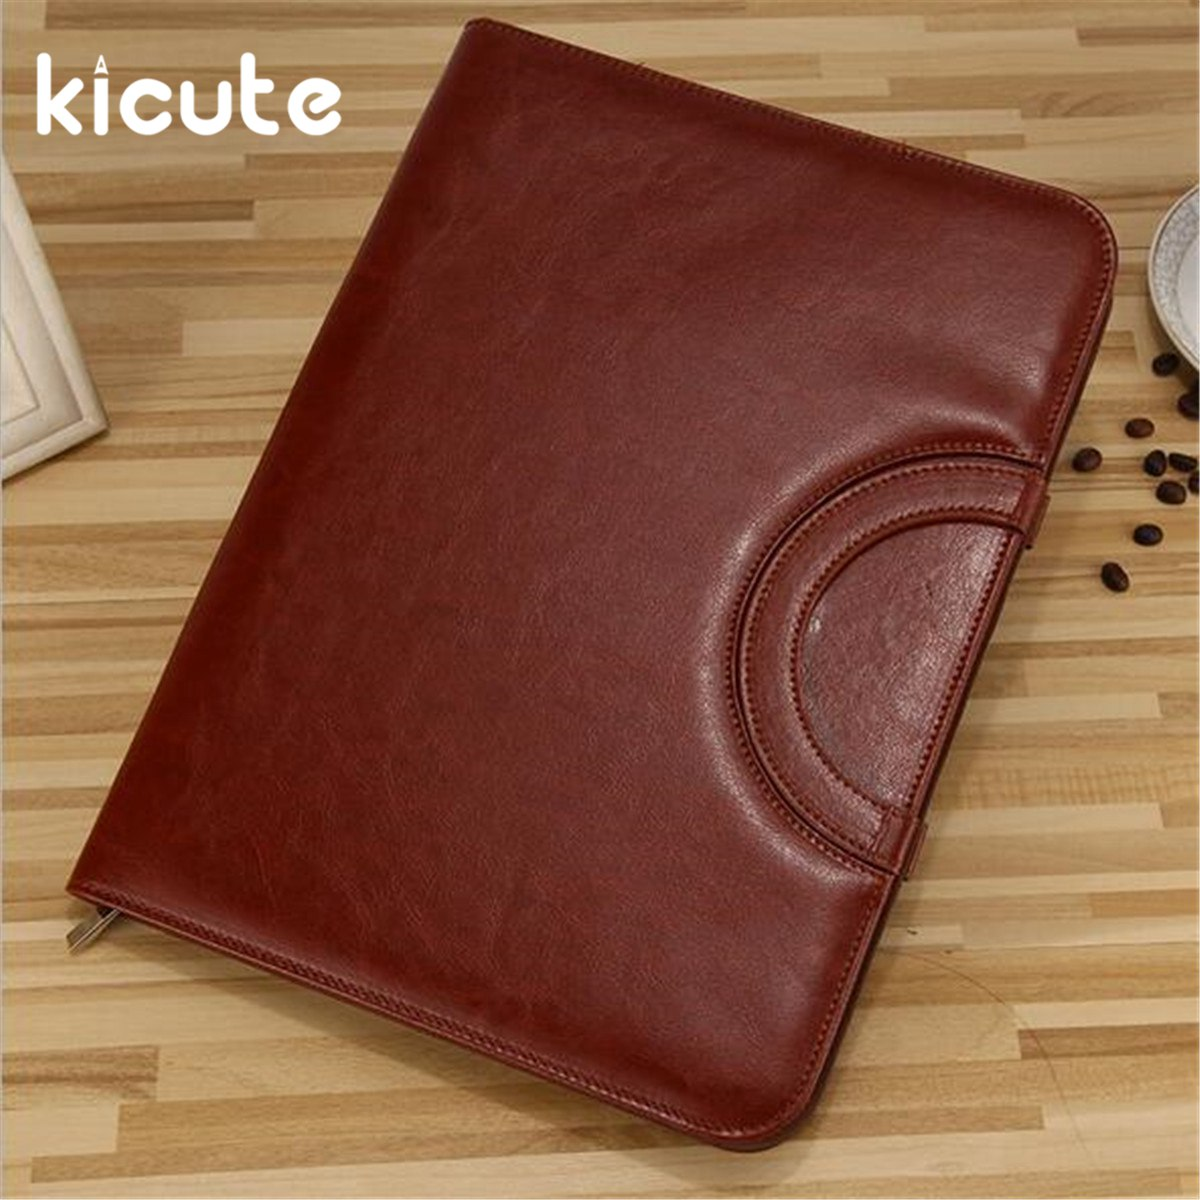 Kicute 1pc Black/Brown A4 PU Leather Zipped Ring Binder Conference Folder Document Bag Business Briefcase Office School Supplies blel hot high quality leather folder a4 briefcase bussiness conference folder black